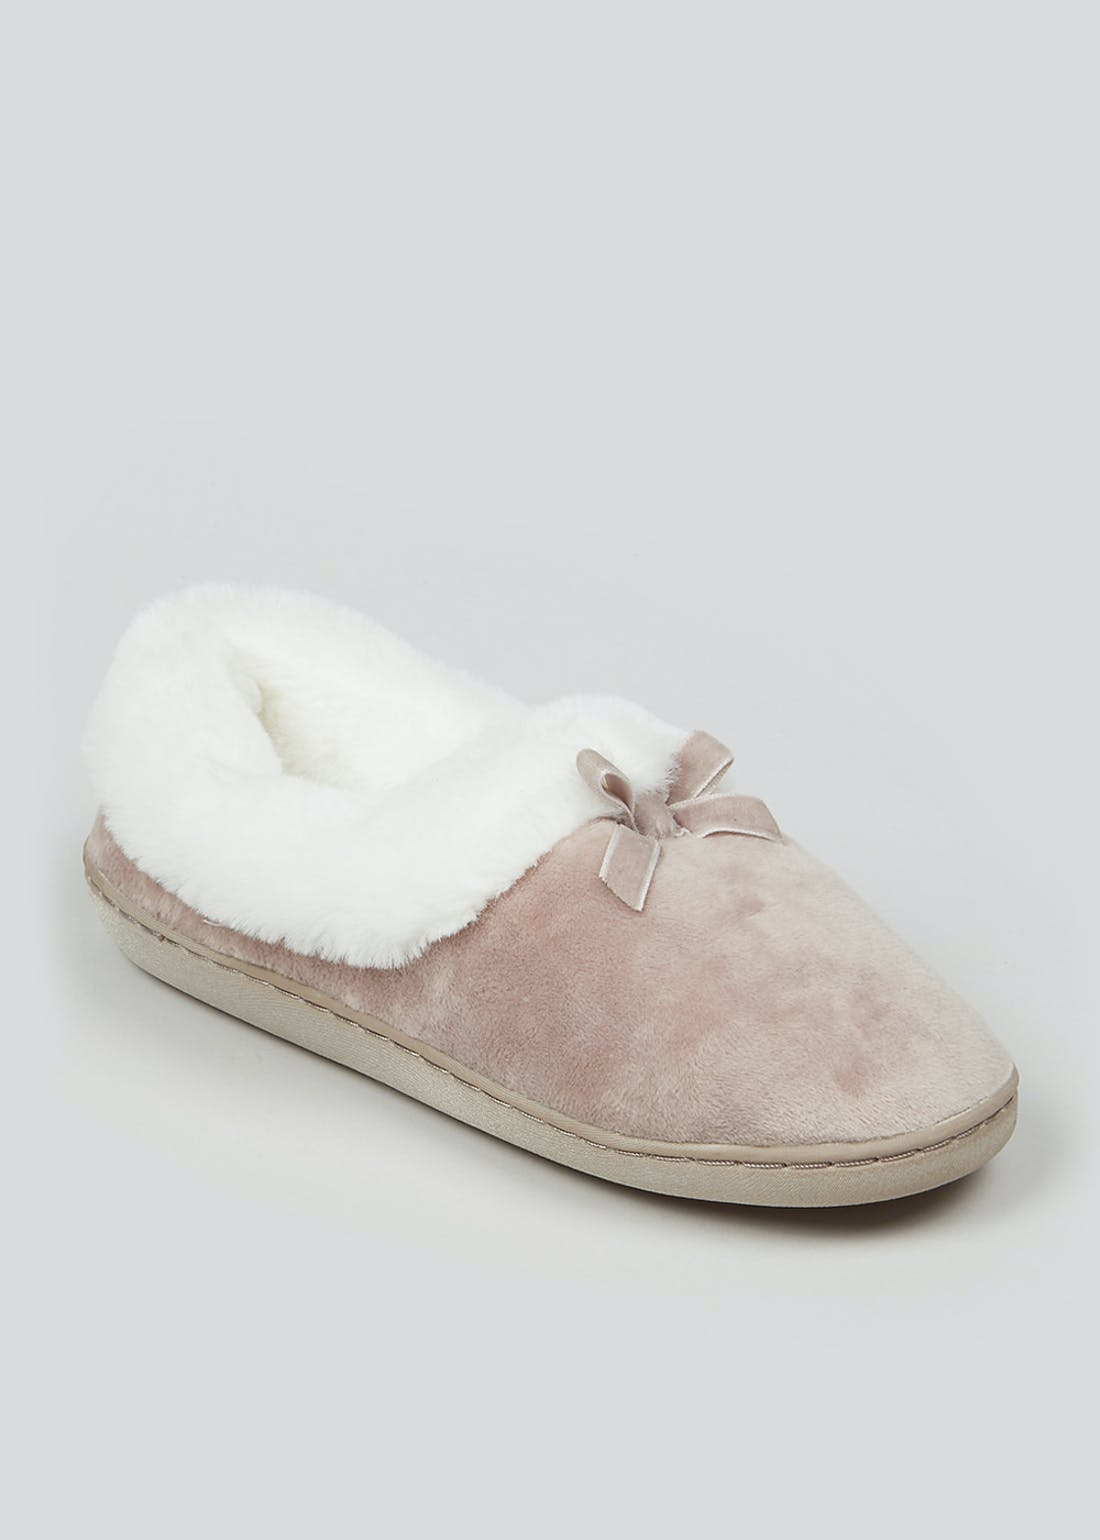 Mink Faux Fur Full Slippers